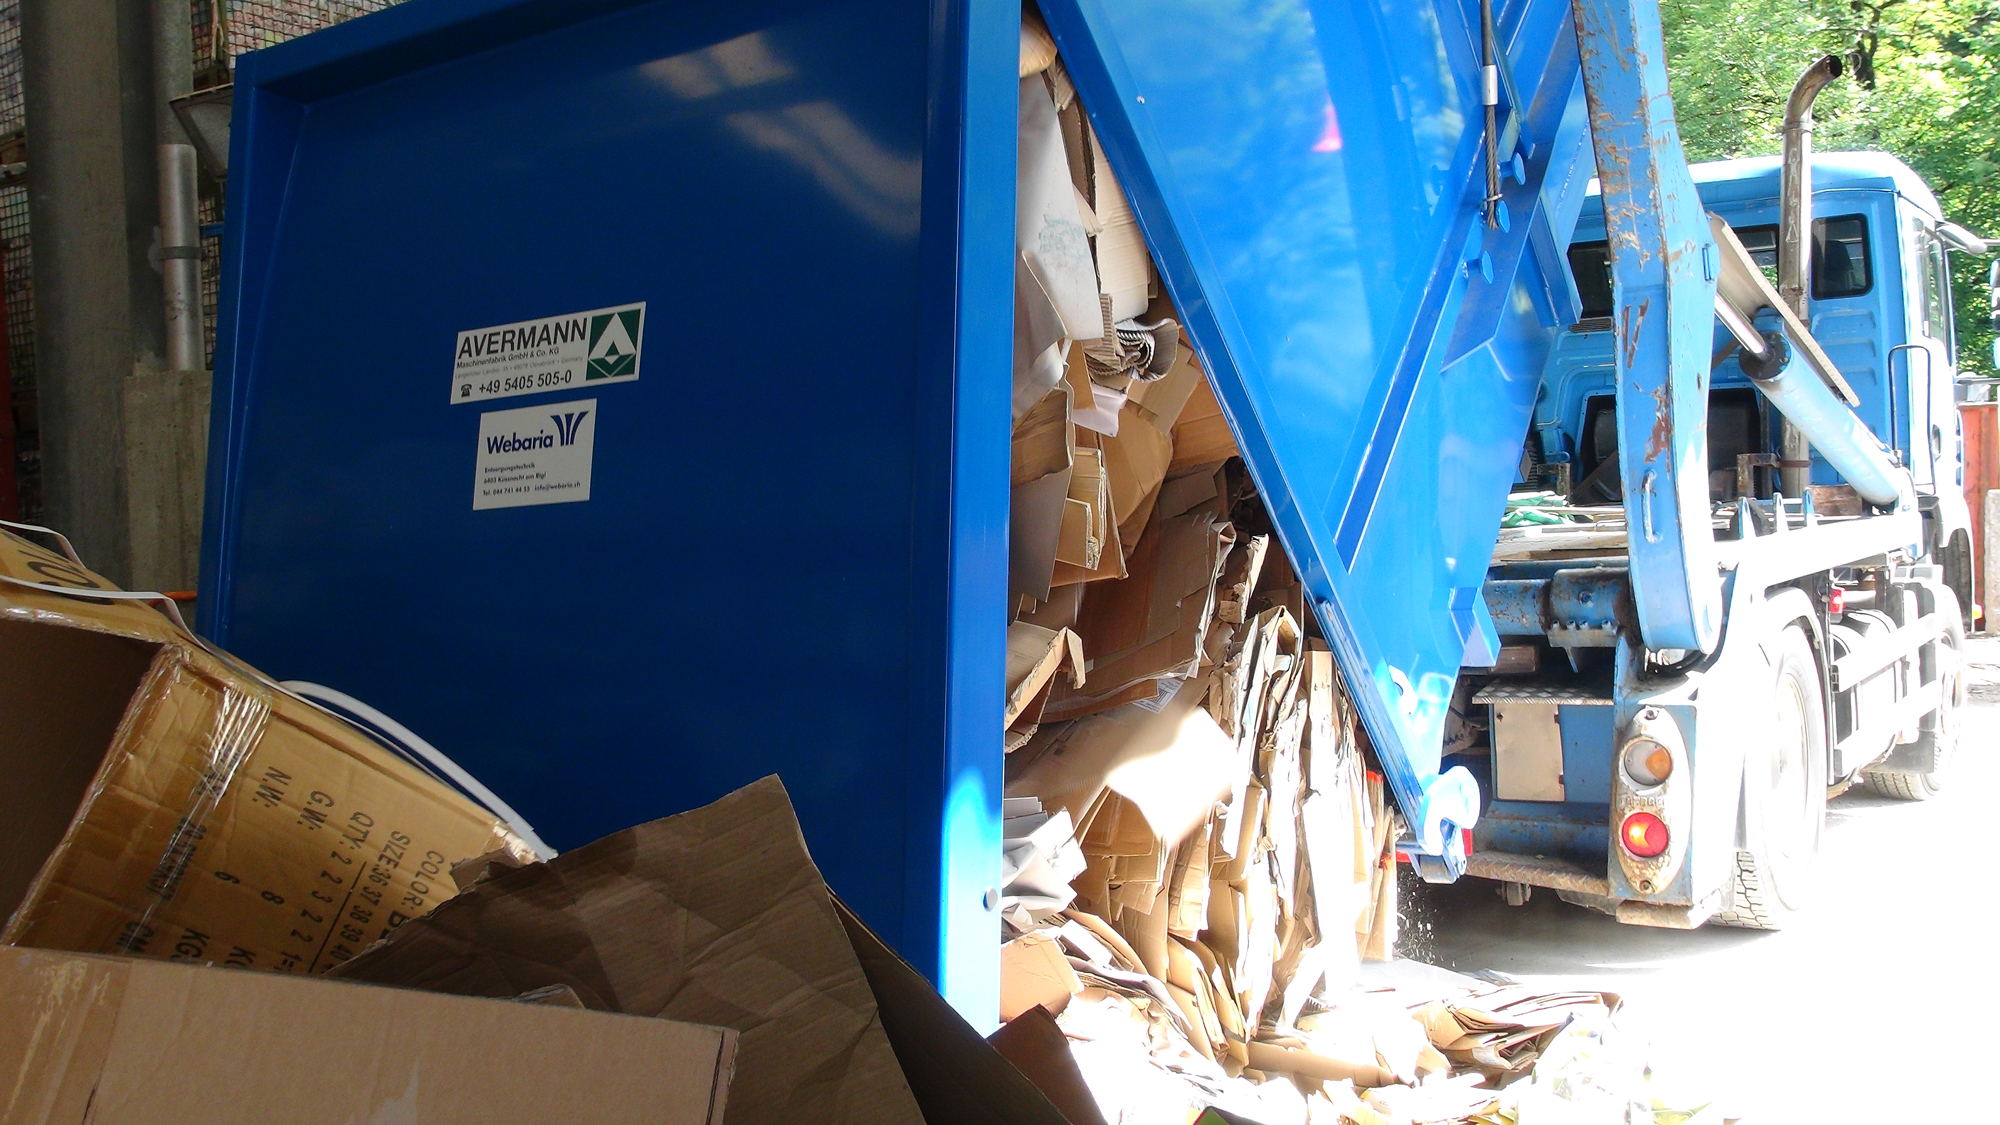 Welaki-Presscontainer-mit-Karton-Kuster-Recycling